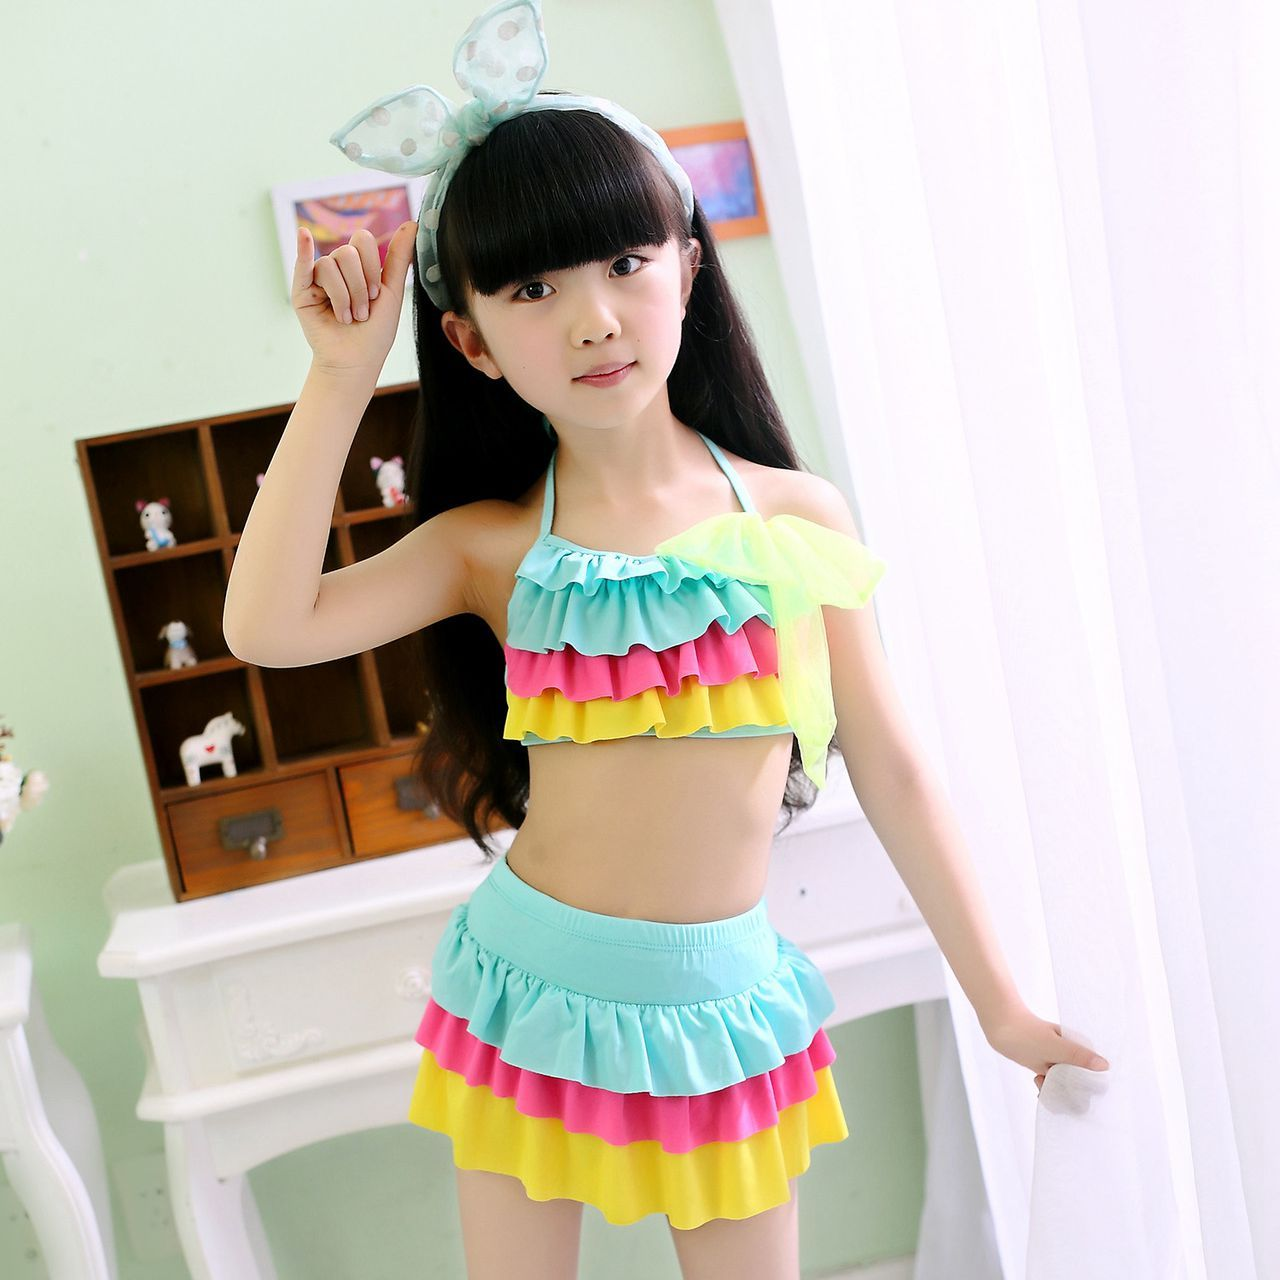 db4c39e78fb1 ... Swim suit 2 3 4 5 6 7 8 Years old. >> Click to Buy << 2017  New Summer Kid Girls